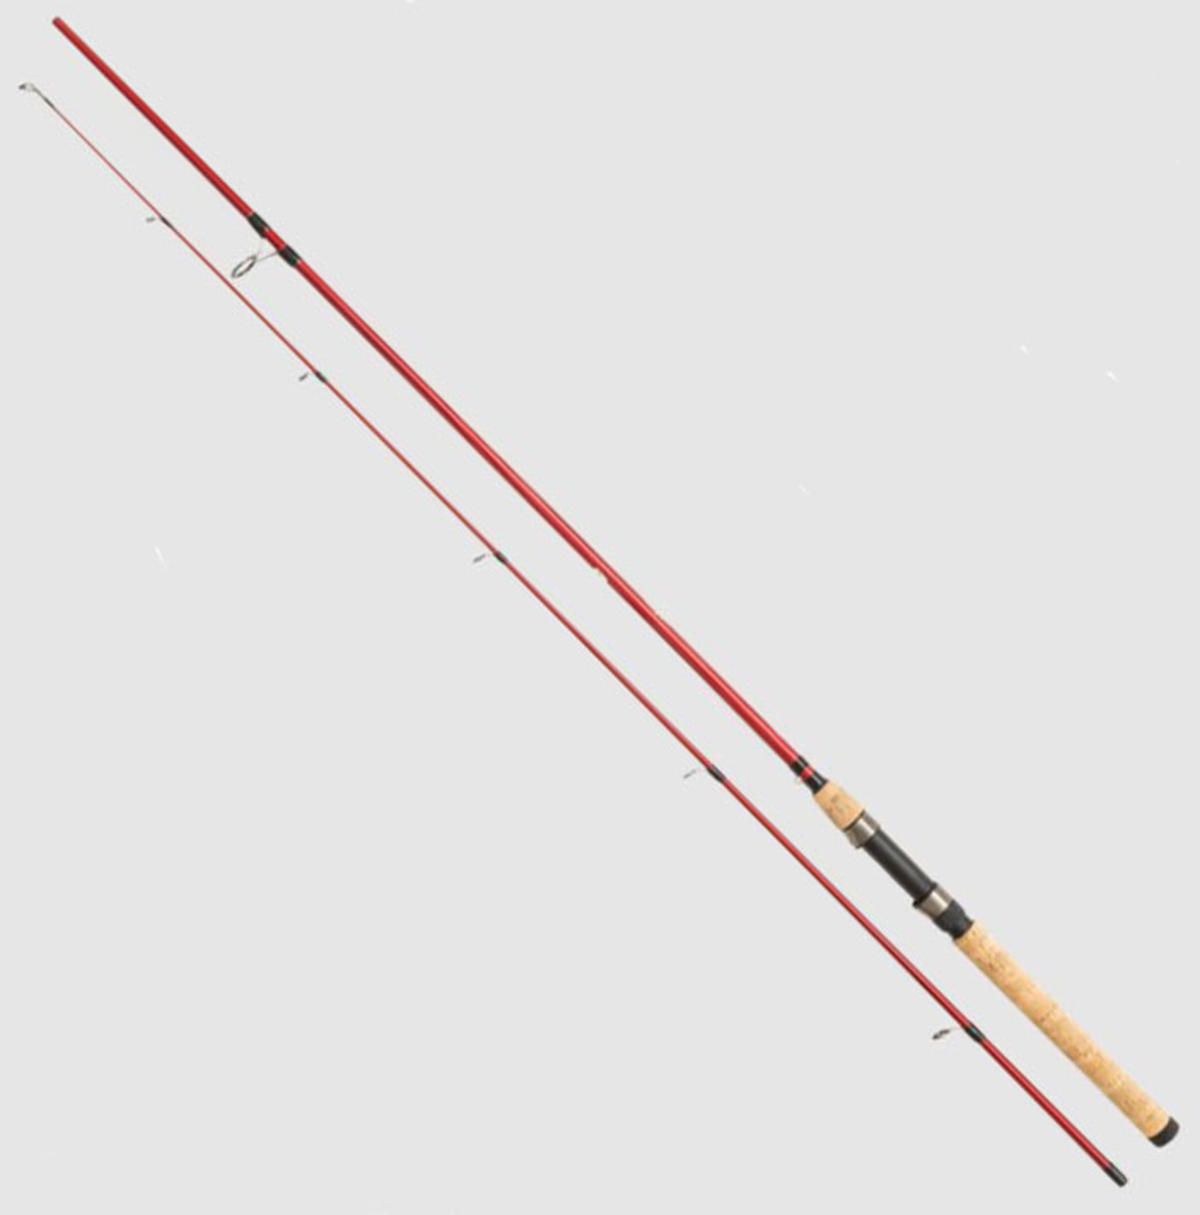 New Berkley Cherrywood HD Trout Spinning Rods 8ft / 9ft - All Models